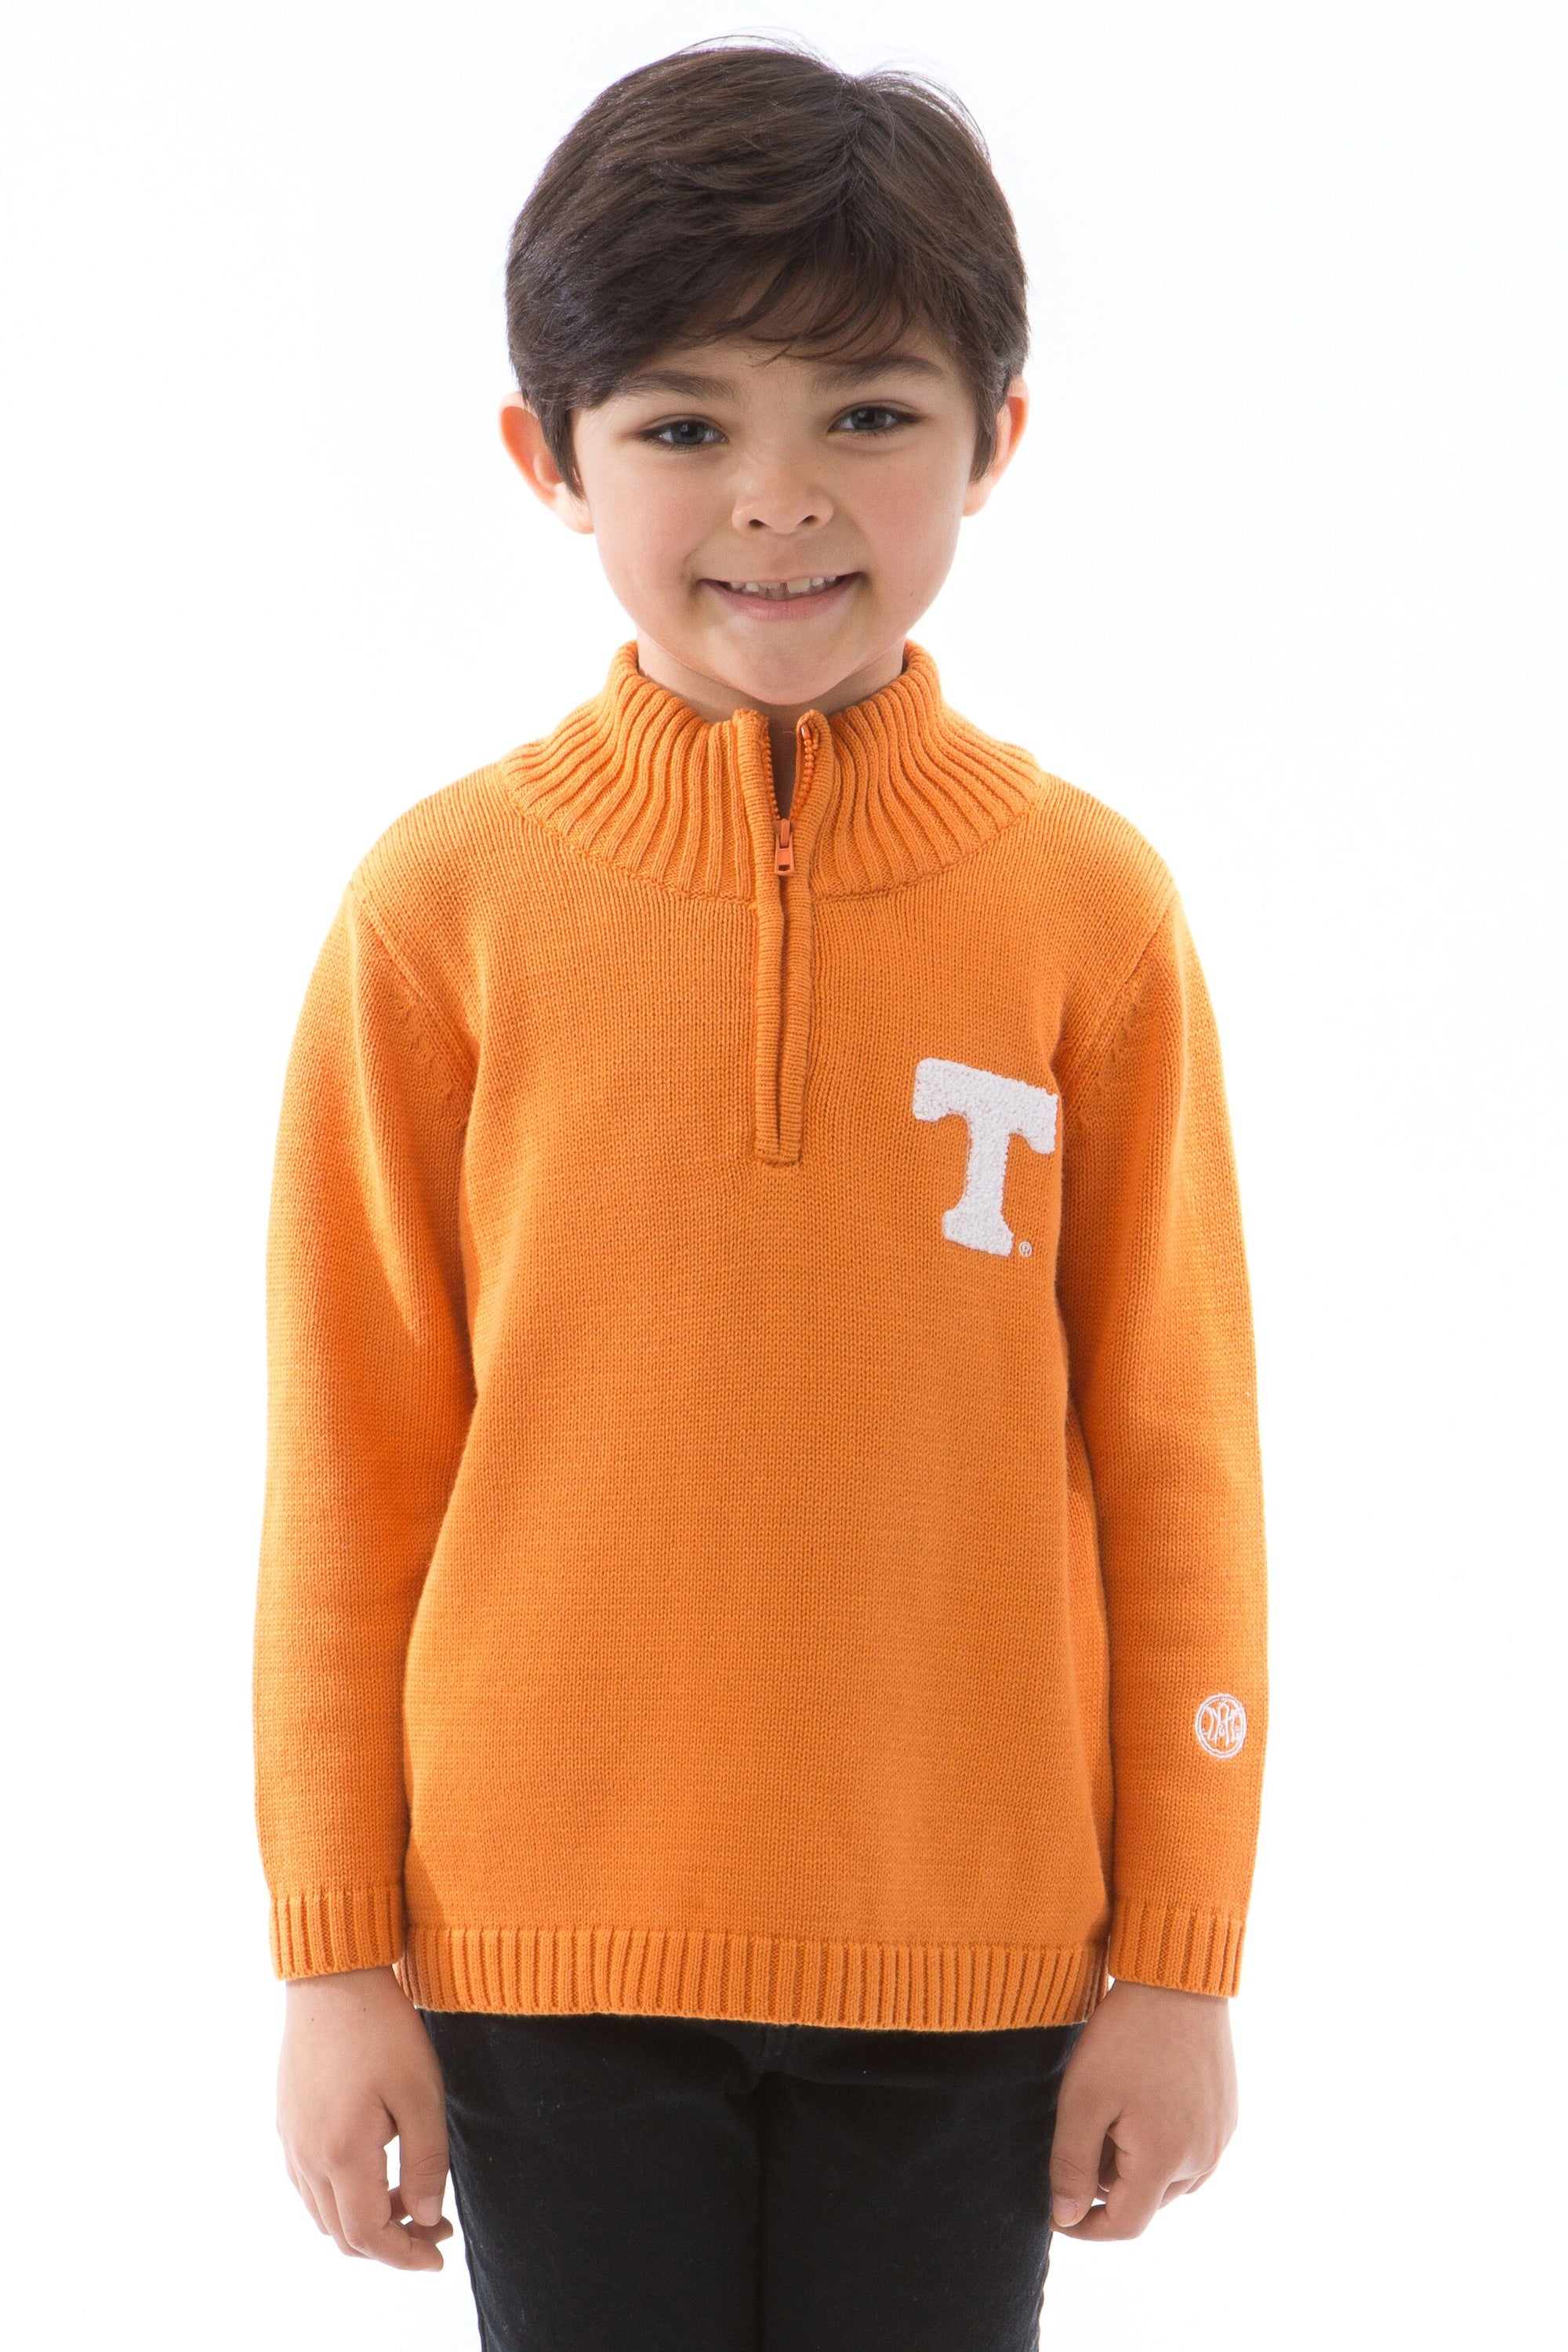 UNIVERSITY OF TENNESSEE Vols Boy's Quarter Zip